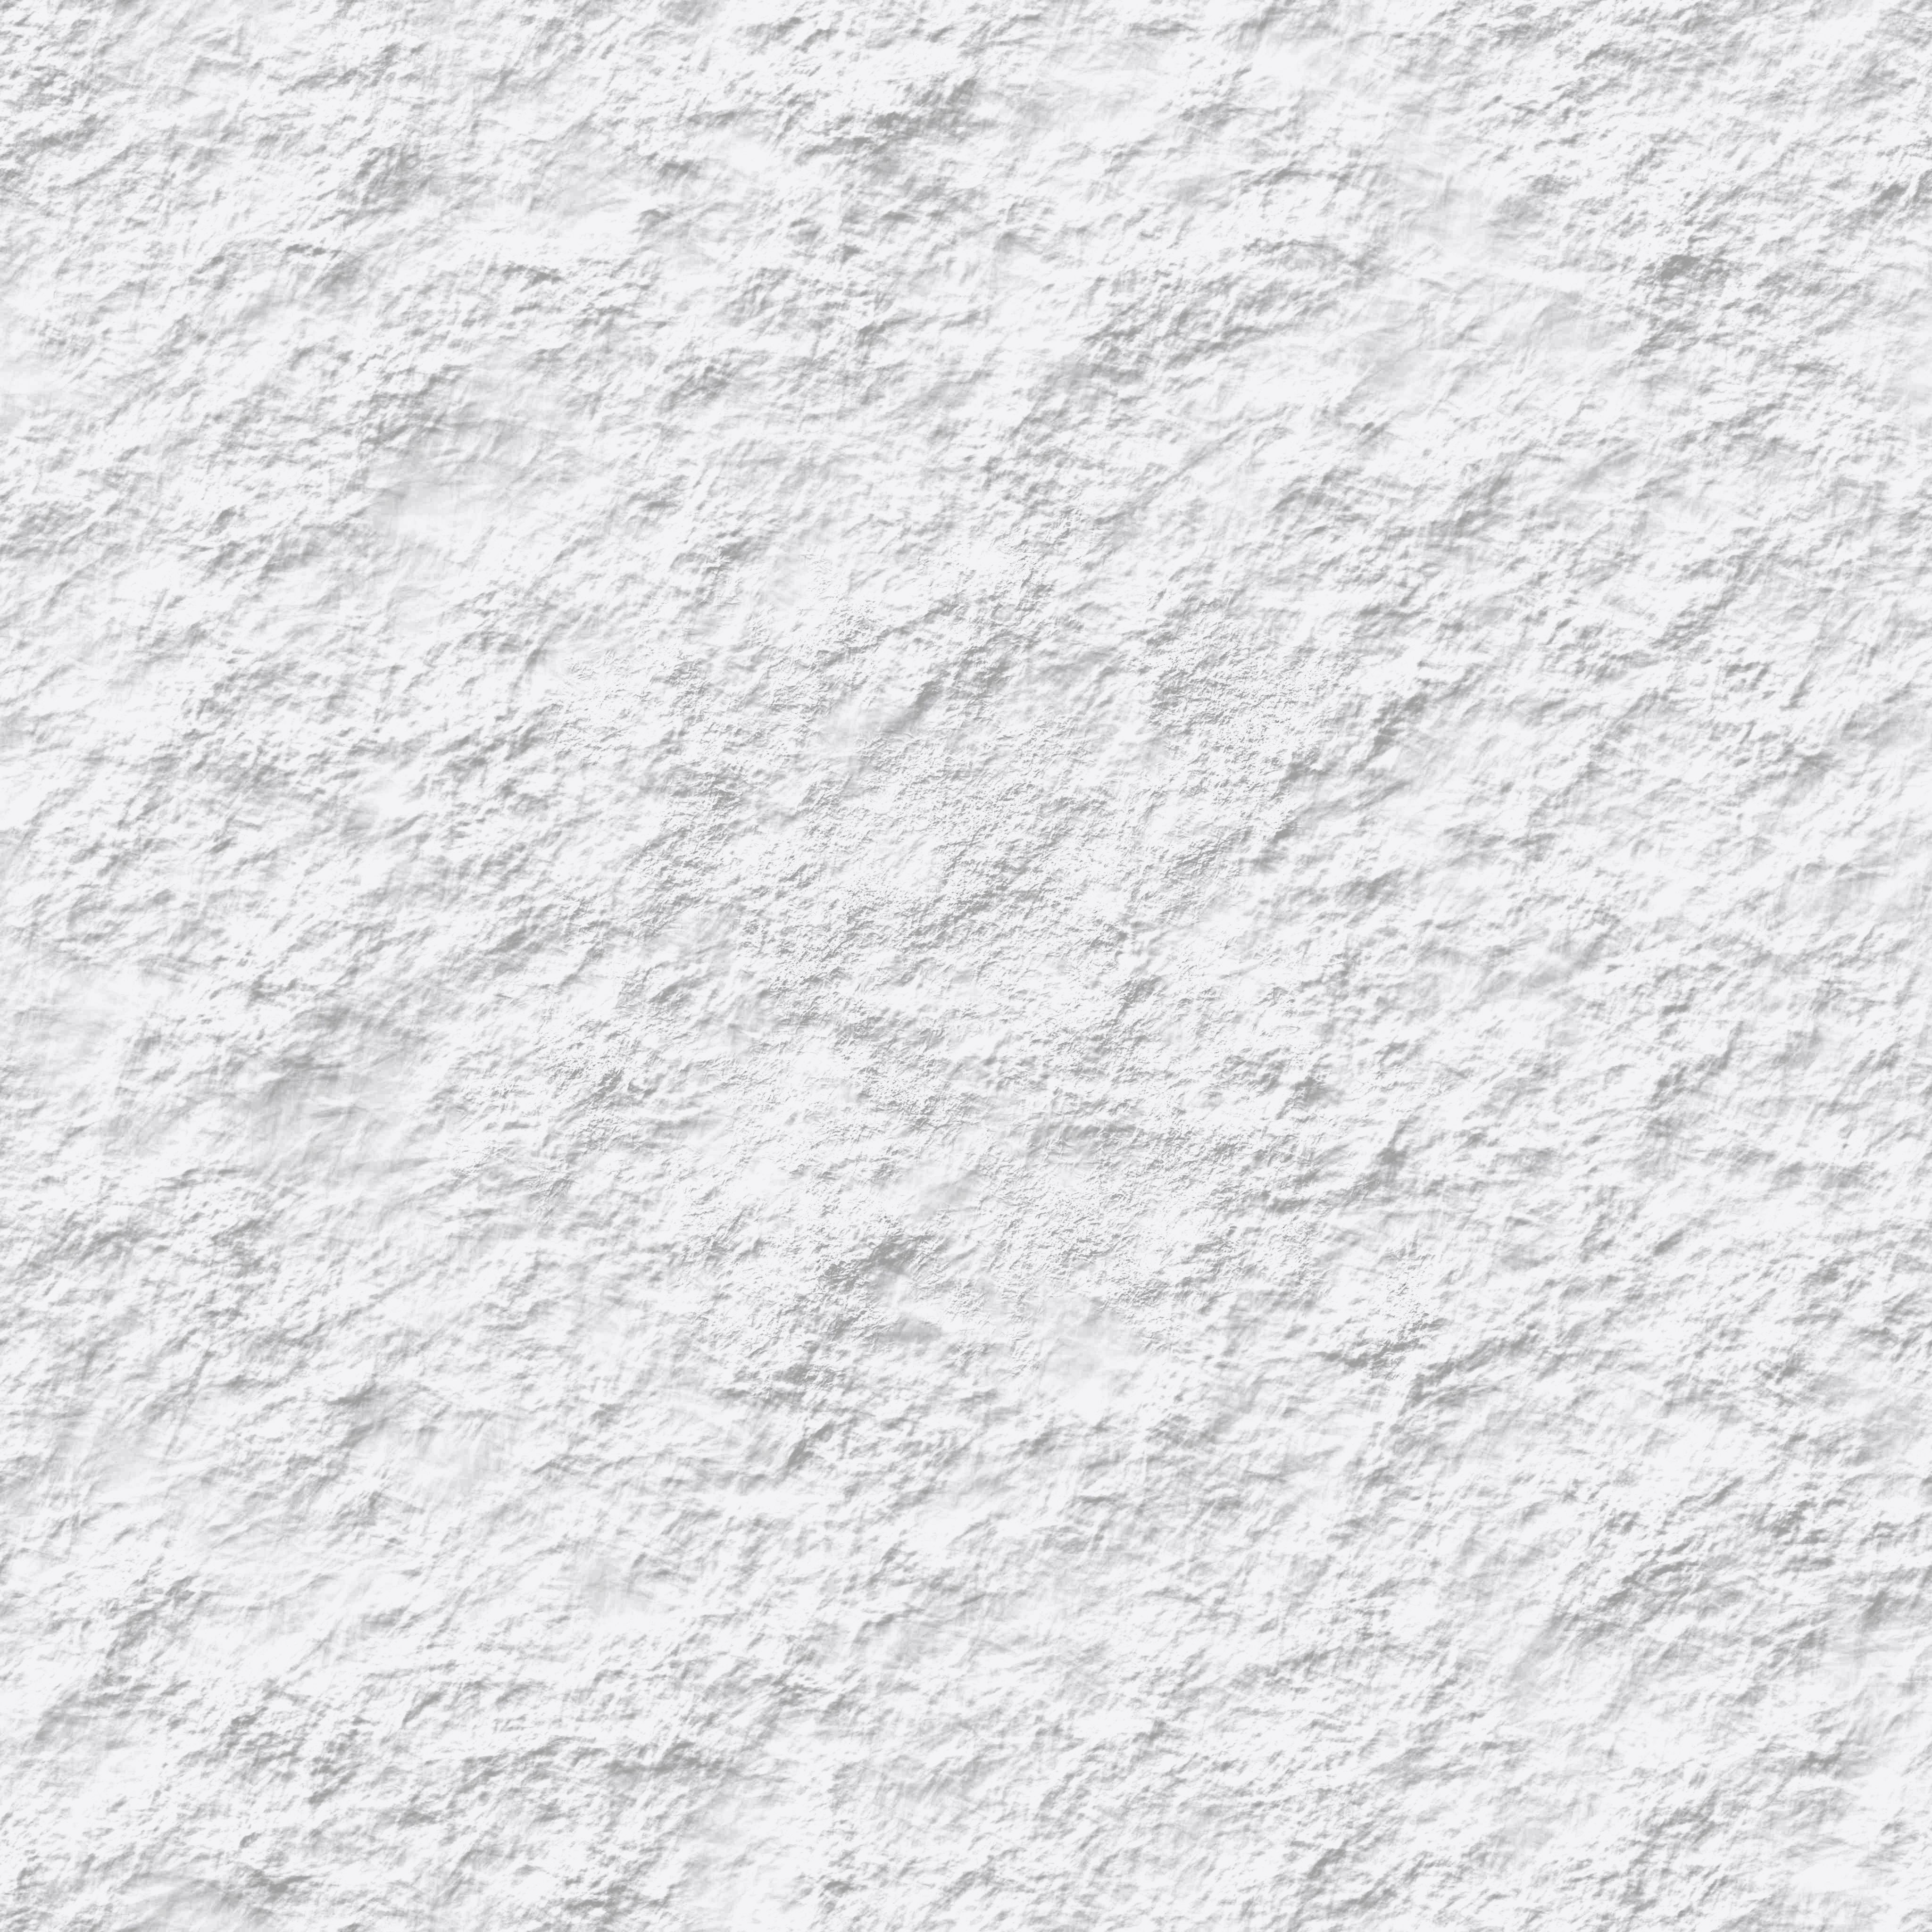 White Concrete Seamless Texture Scanned With Very High Extension Resolution In 2020 Wall Texture Design White Fabric Texture White Concrete